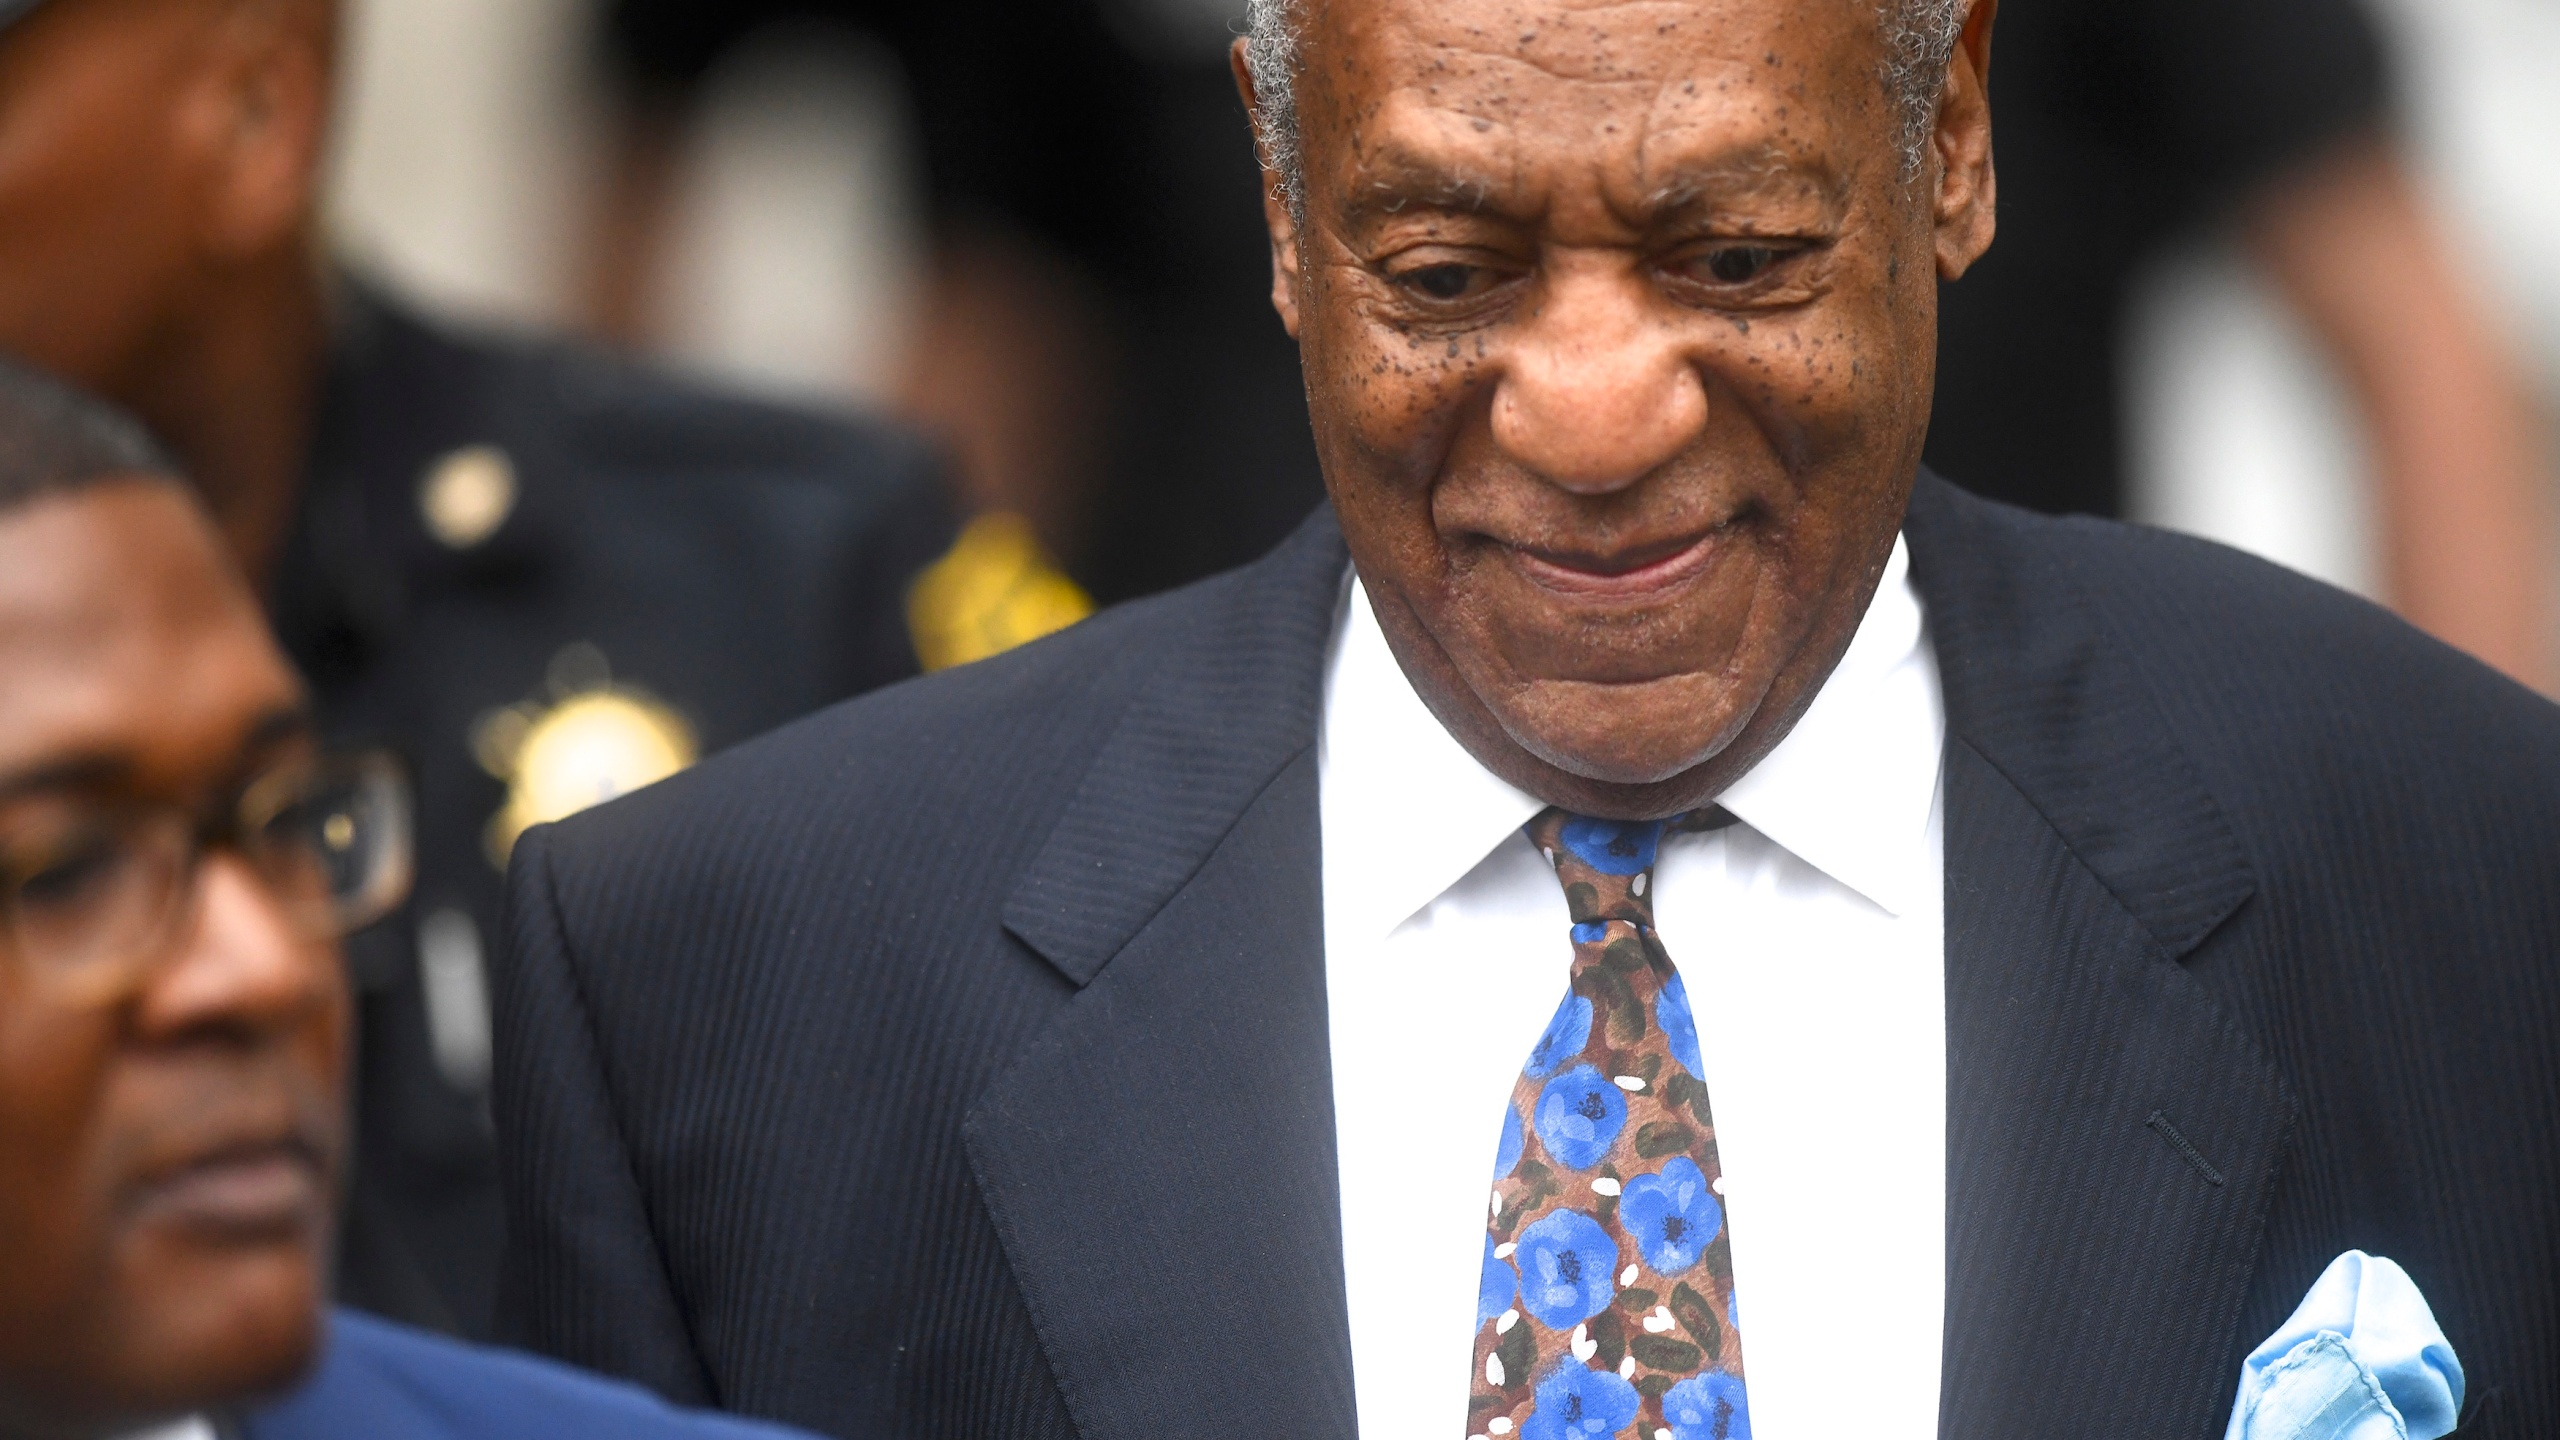 Bill Cosby arrives at the Montgomery County Courthouse on the first day of sentencing in his sexual assault trial on September 24, 2018 in Norristown, Pennsylvania. (Credit: Mark Makela/Getty Images)